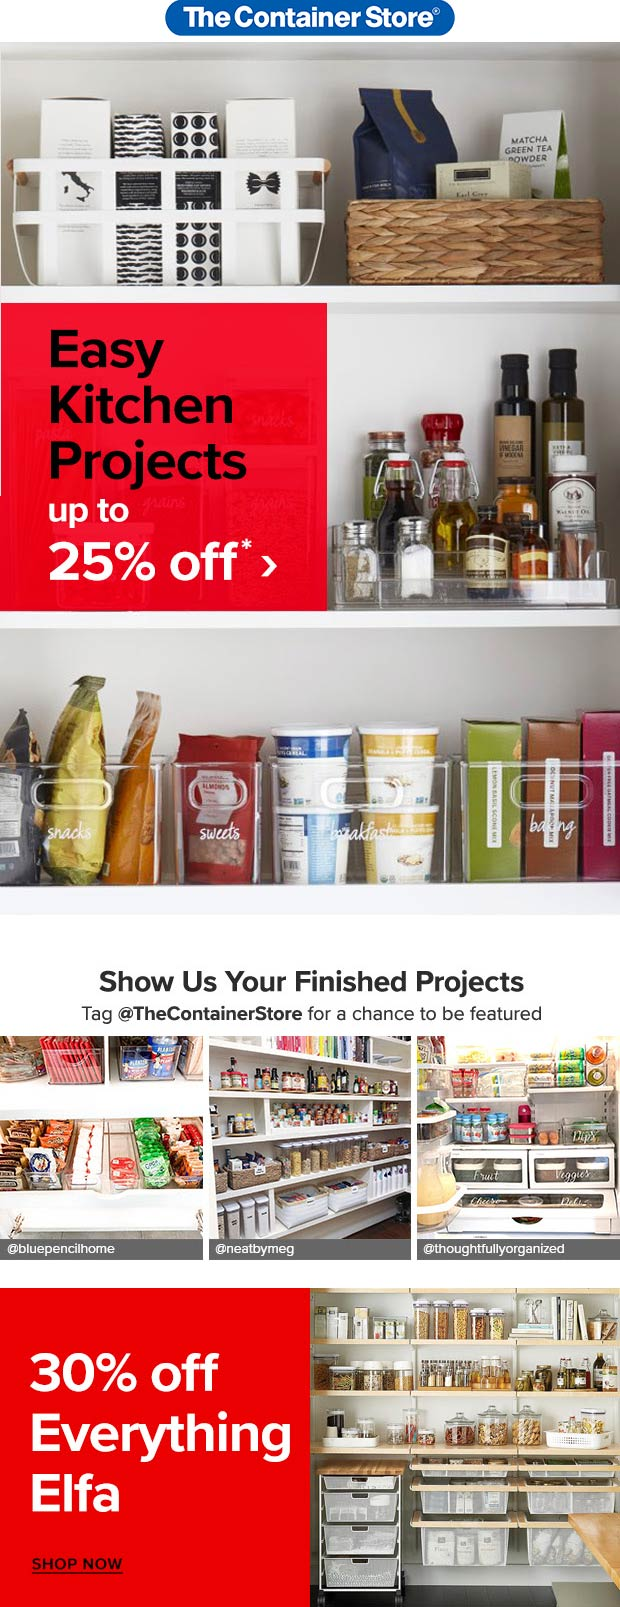 Container Store coupons & promo code for [April 2021]